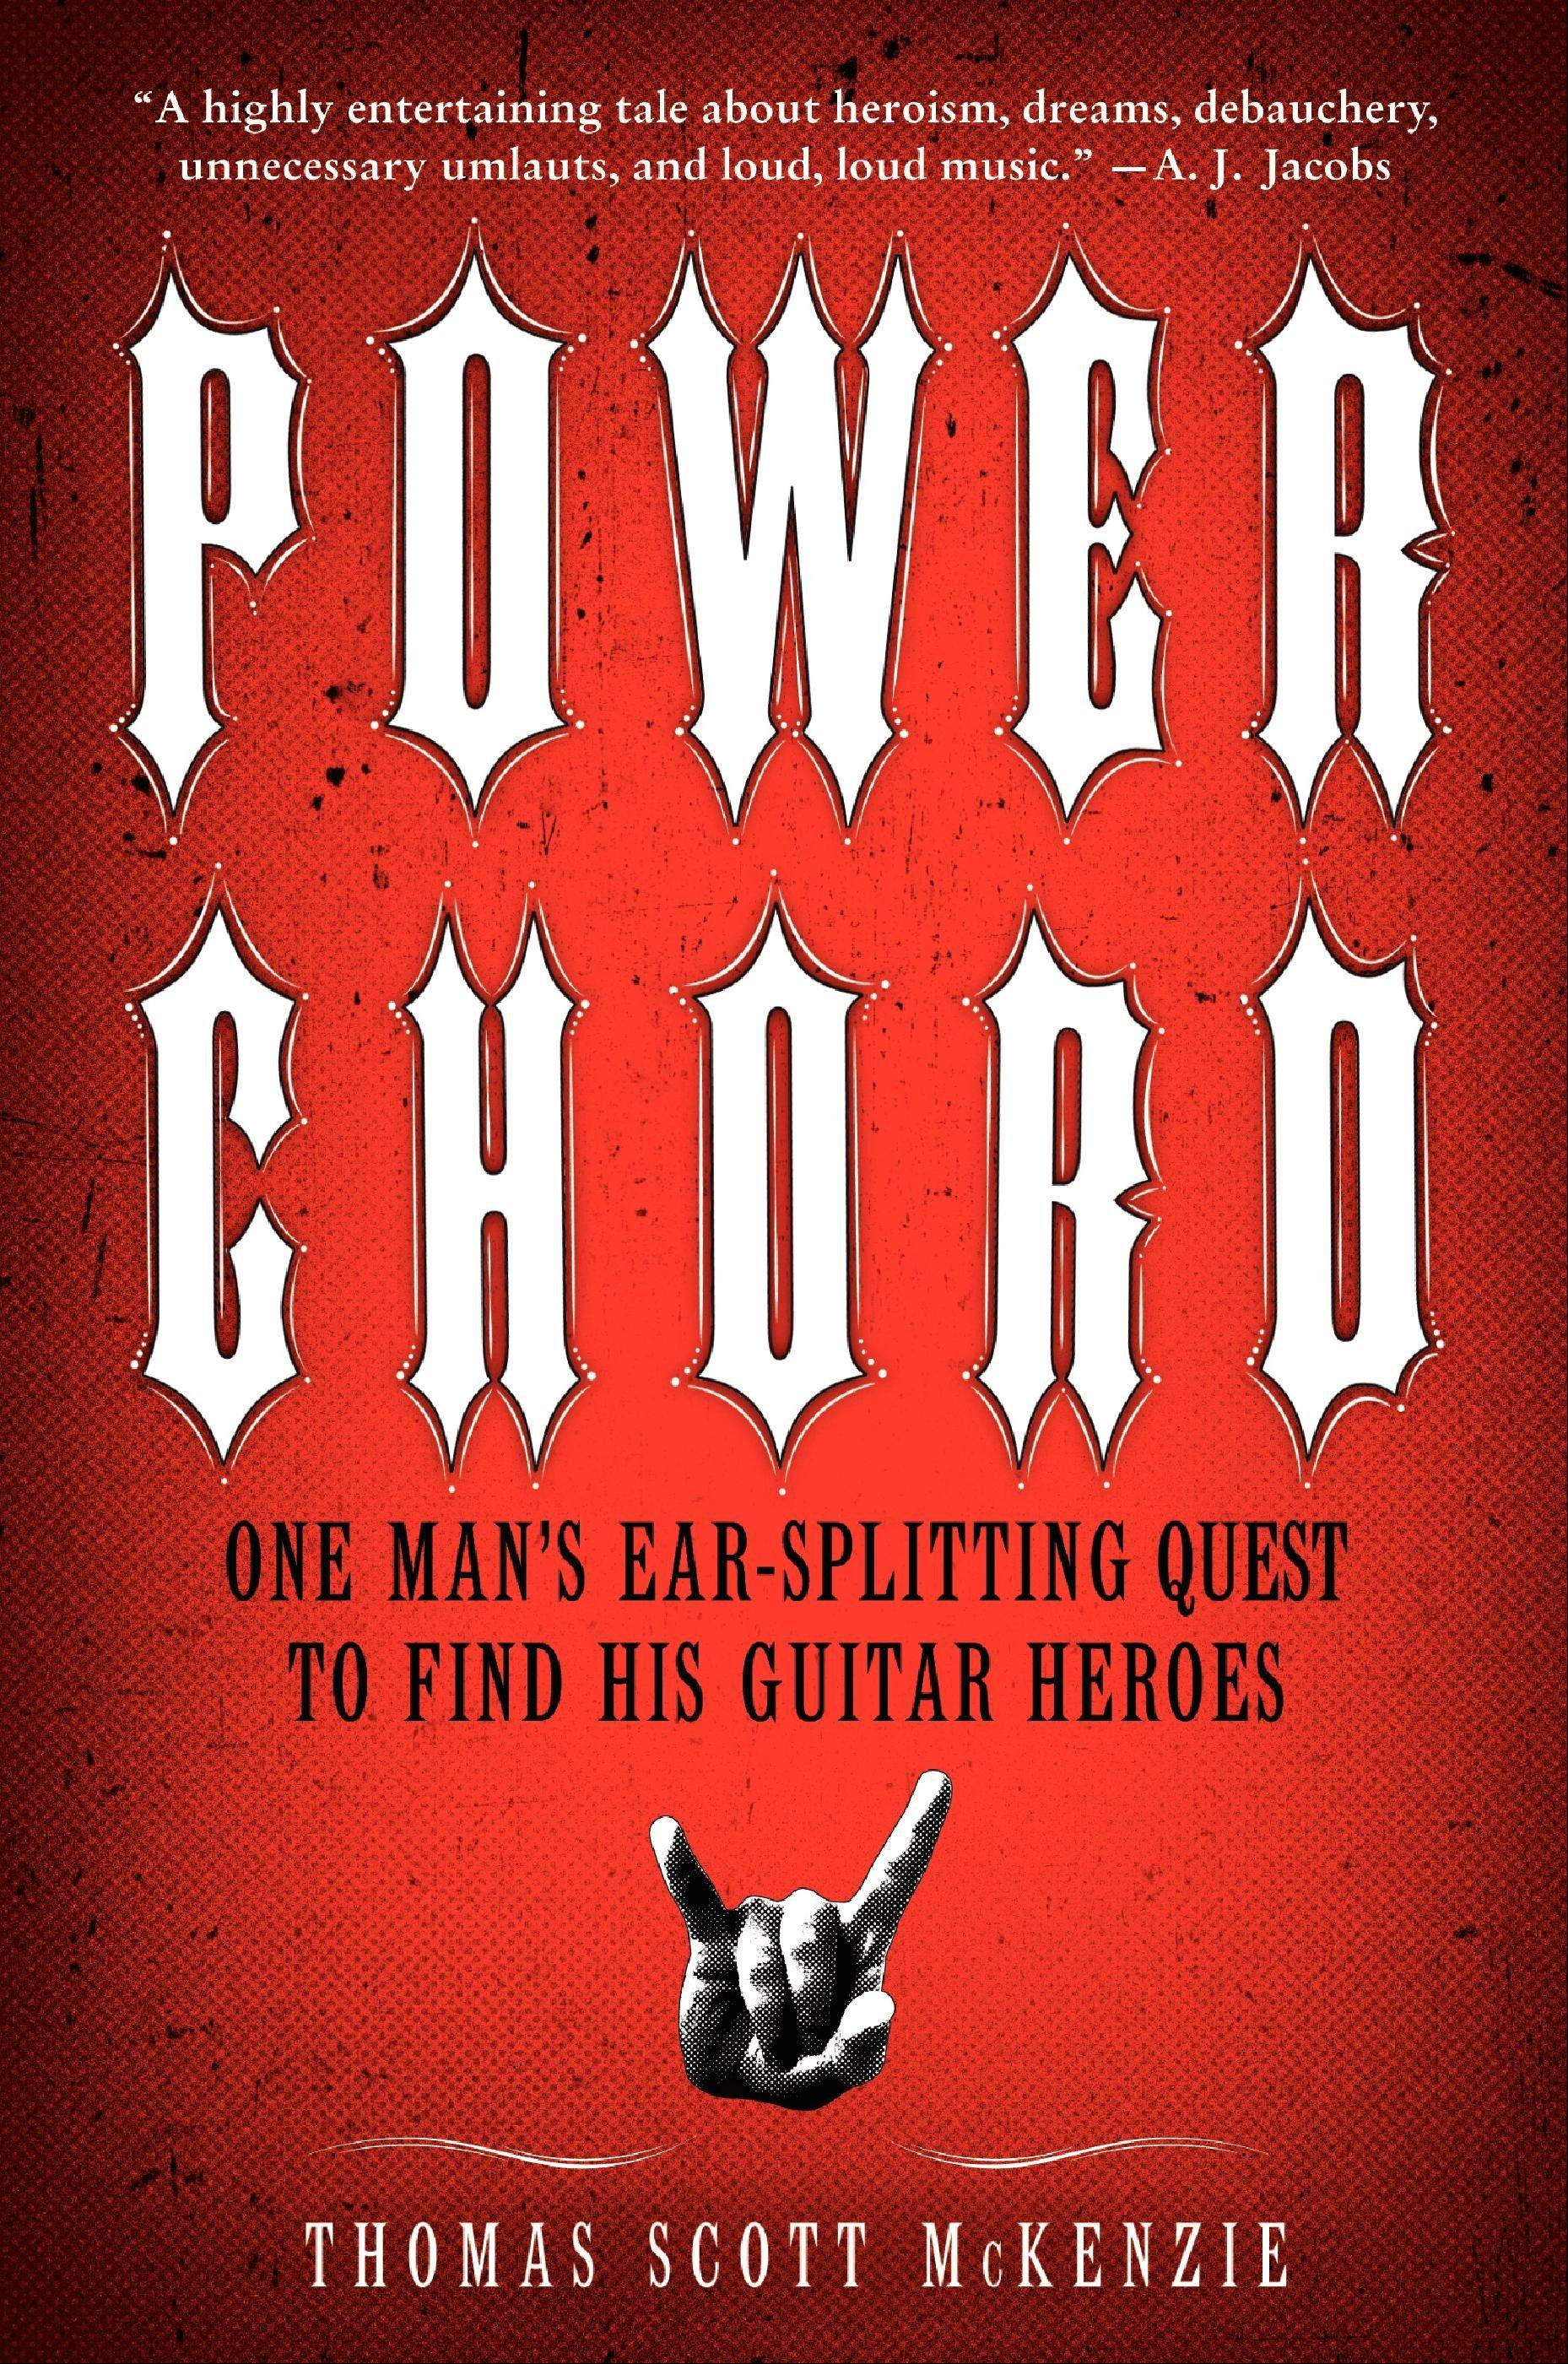 """Power Chord: One Man's Ear-Splitting Quest to Find His Guitar Heroes"" by Thomas Scott McKenzie"